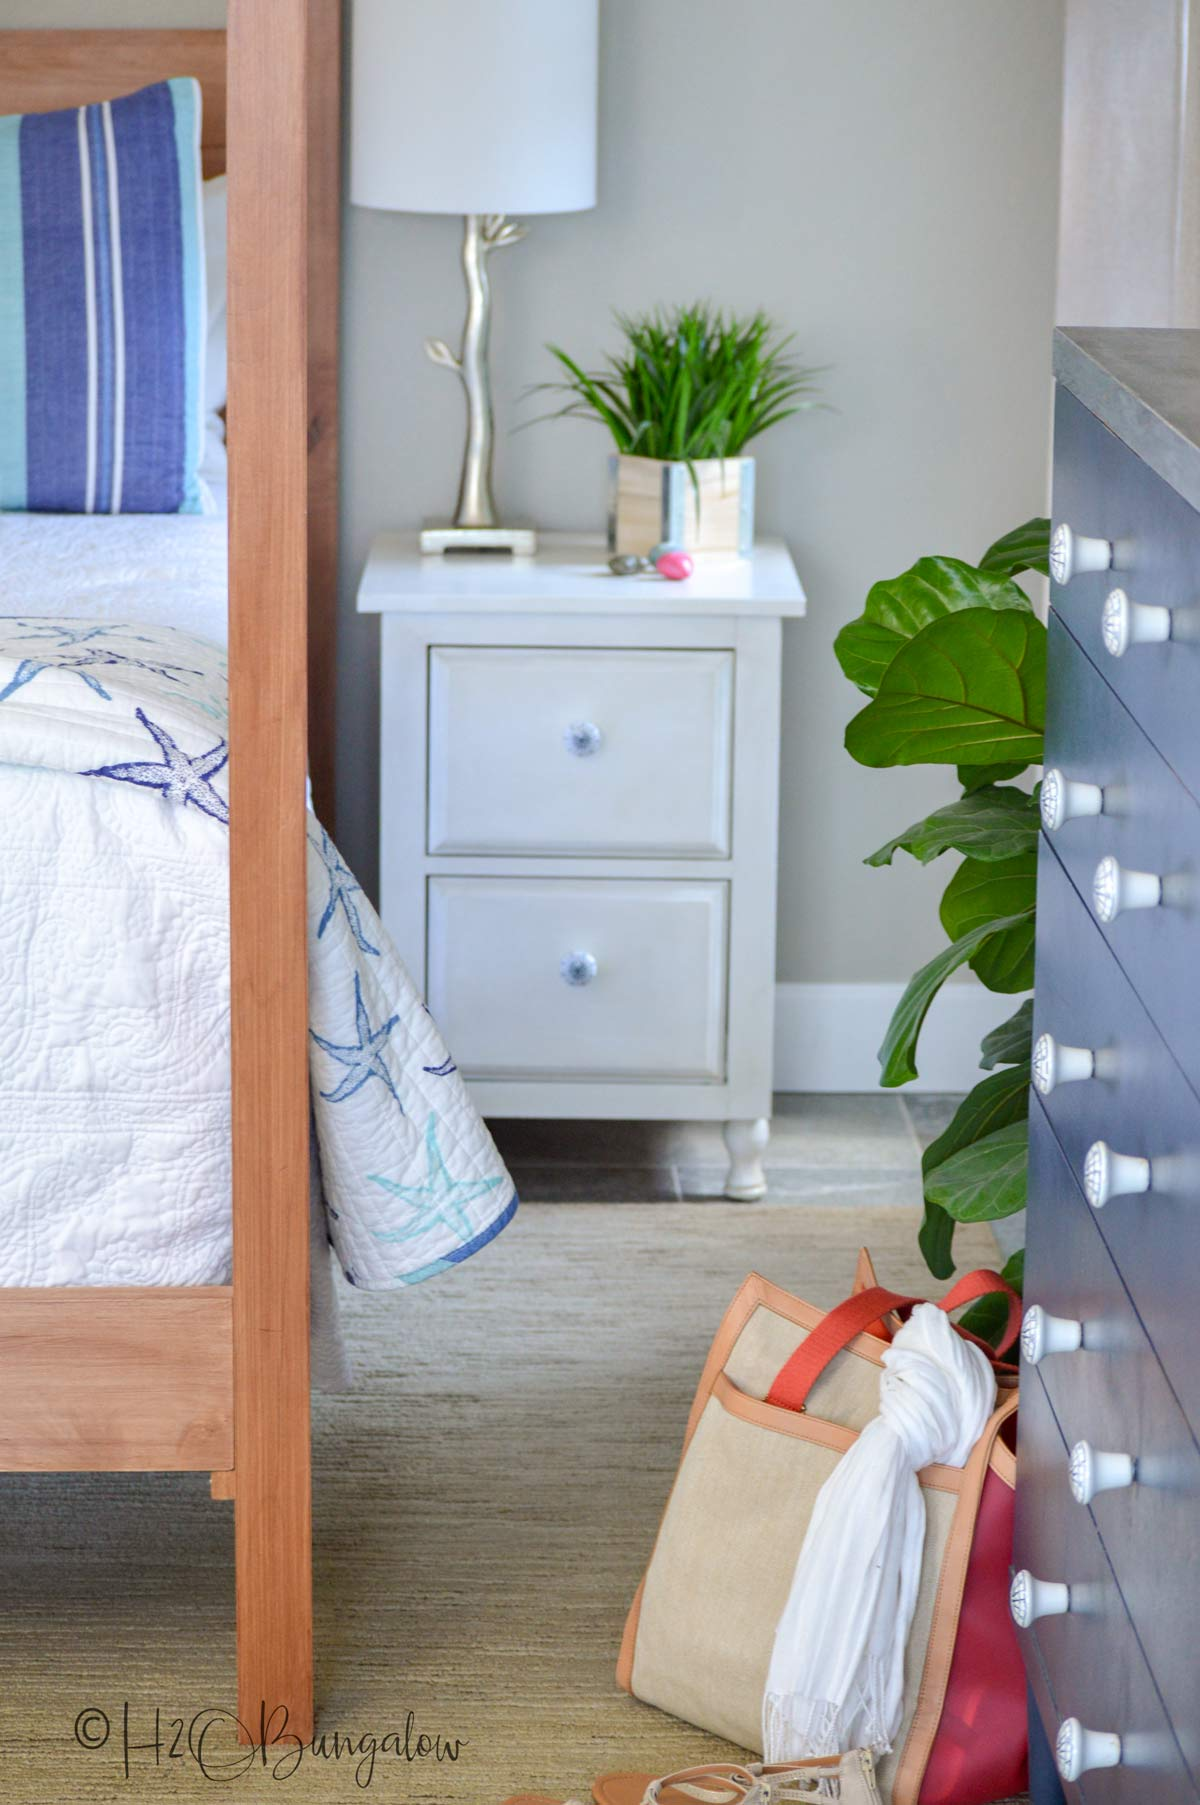 Get free plans to build the DIY queen bed frame